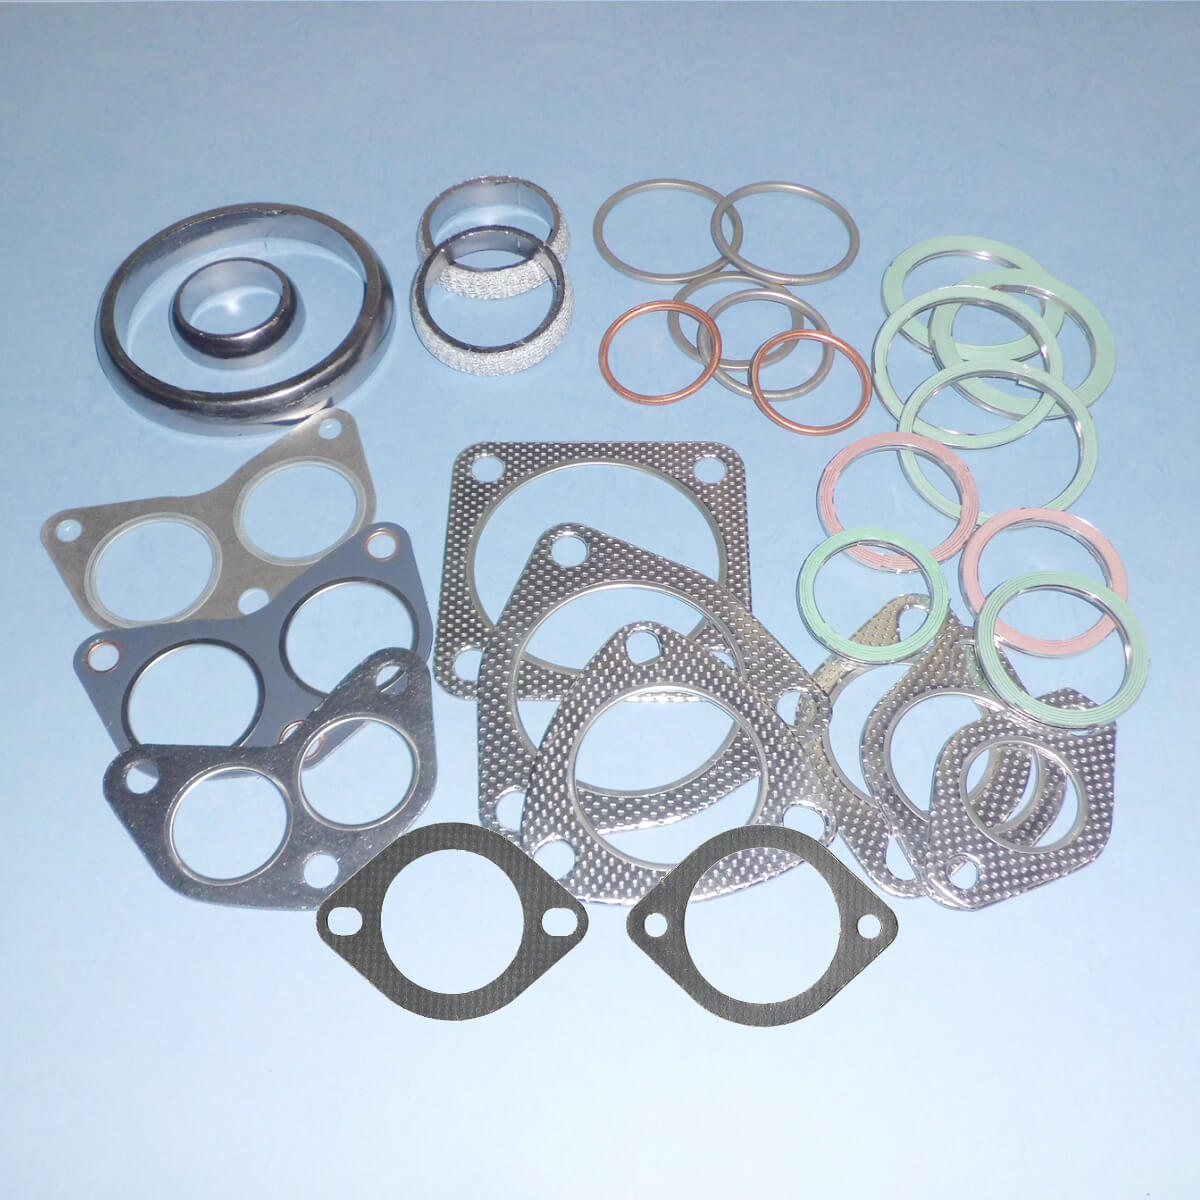 Exhaust Pipe Gasket/排氣管墊片